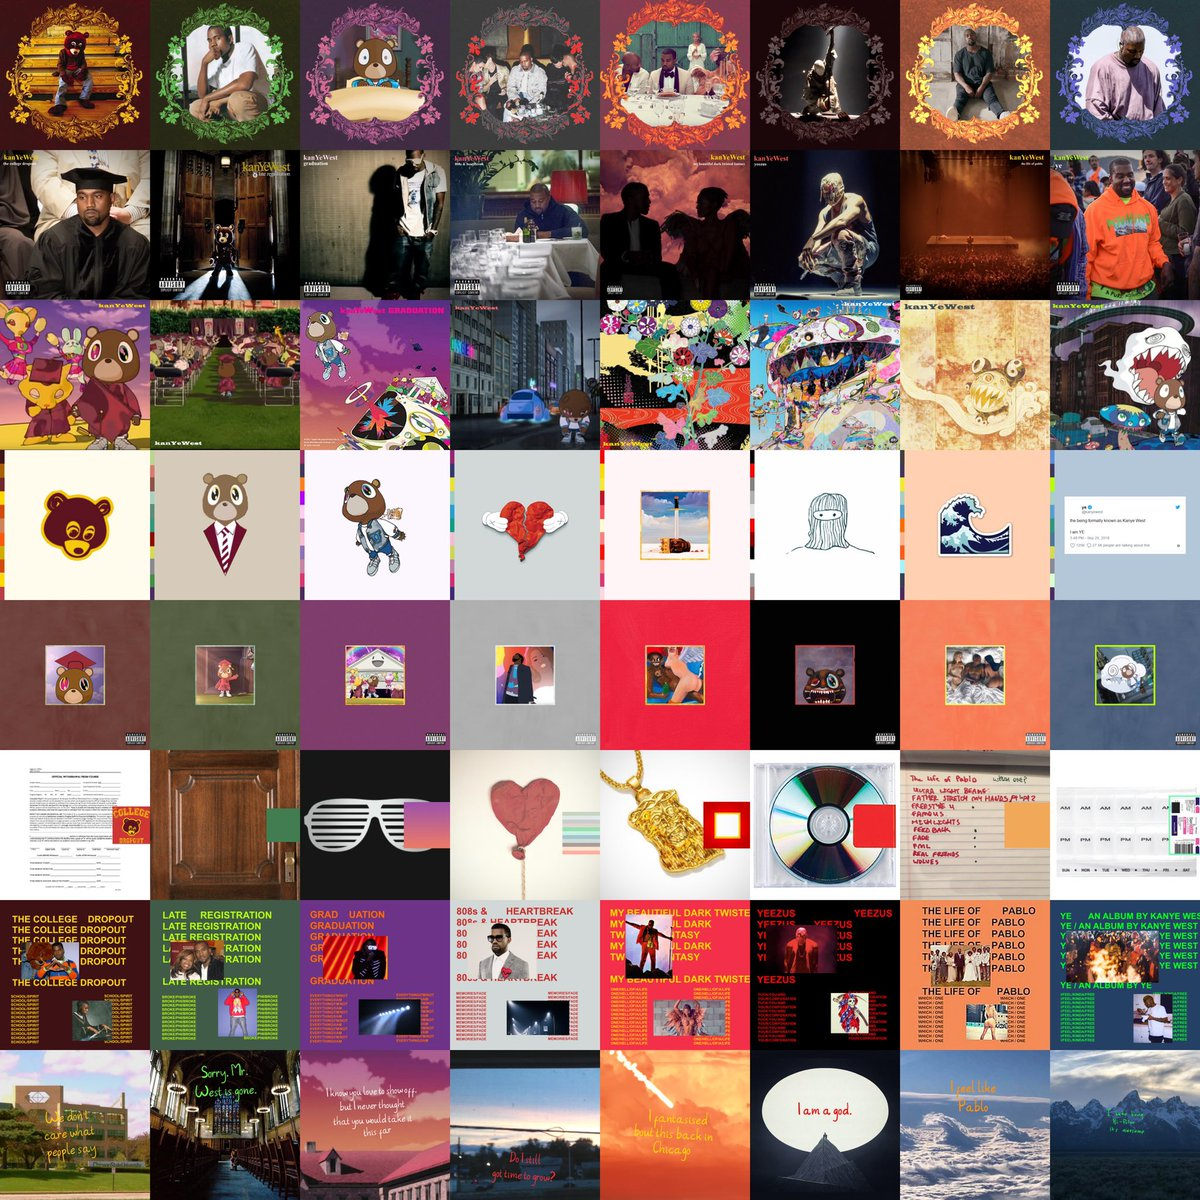 Every Kanye album cover in the style of every Kanye album